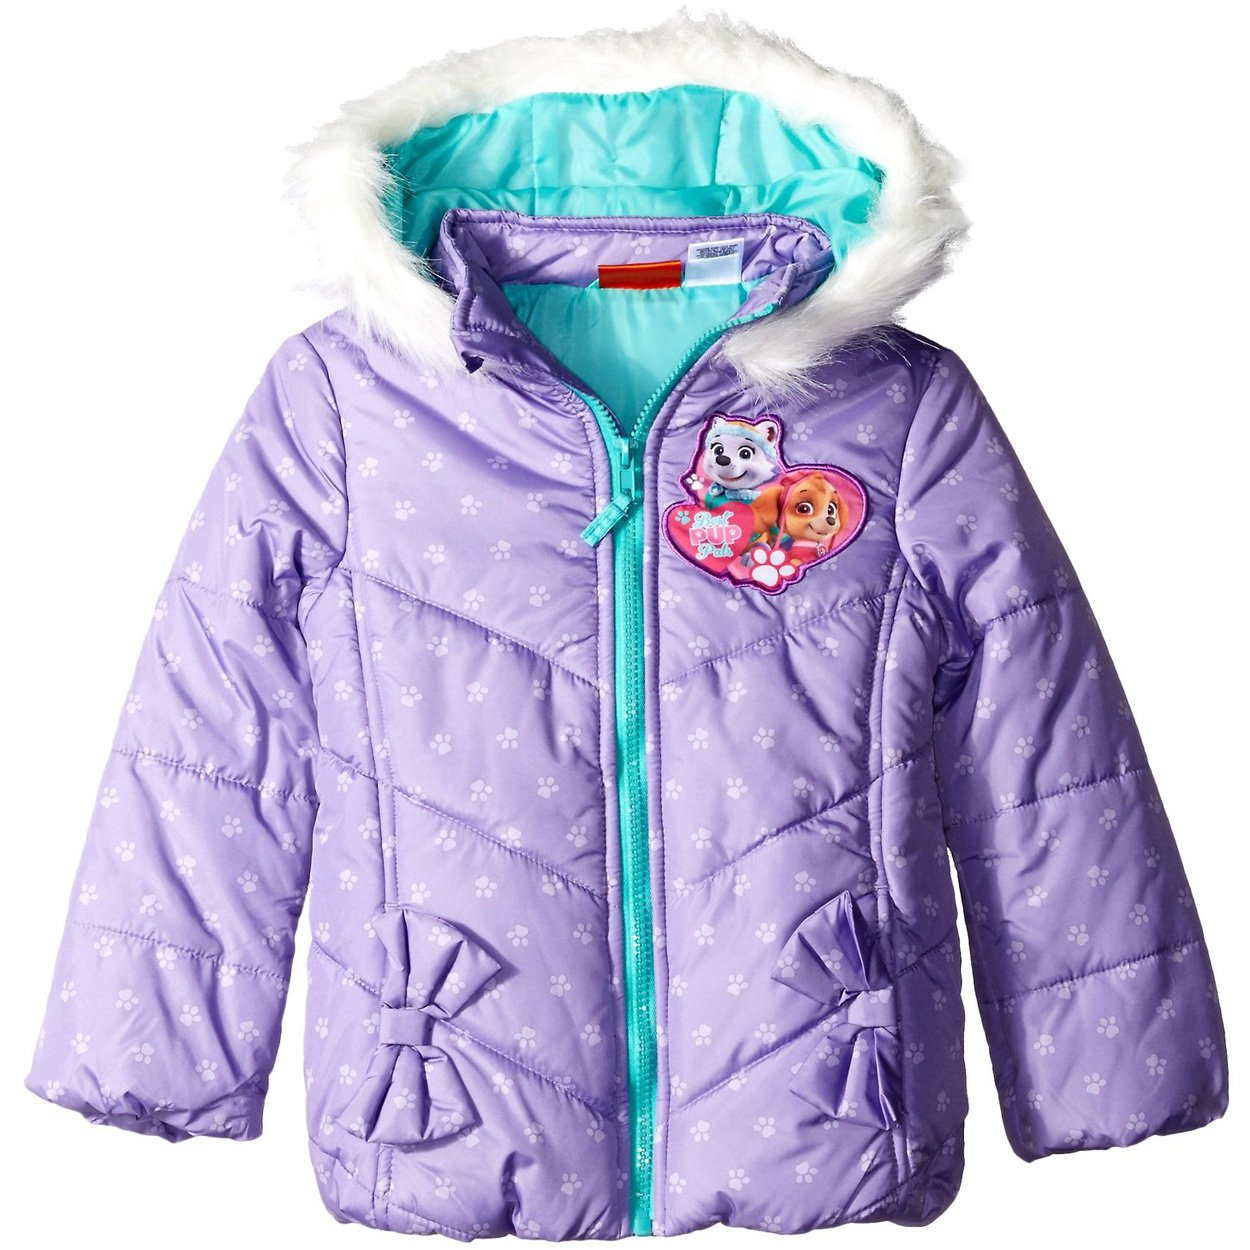 Nickelodeon Unisex Paw Patrol Puffer Coat Nickelodeon Paw Patrol Puffer Toddler Girls 2T Pup Pals Purple